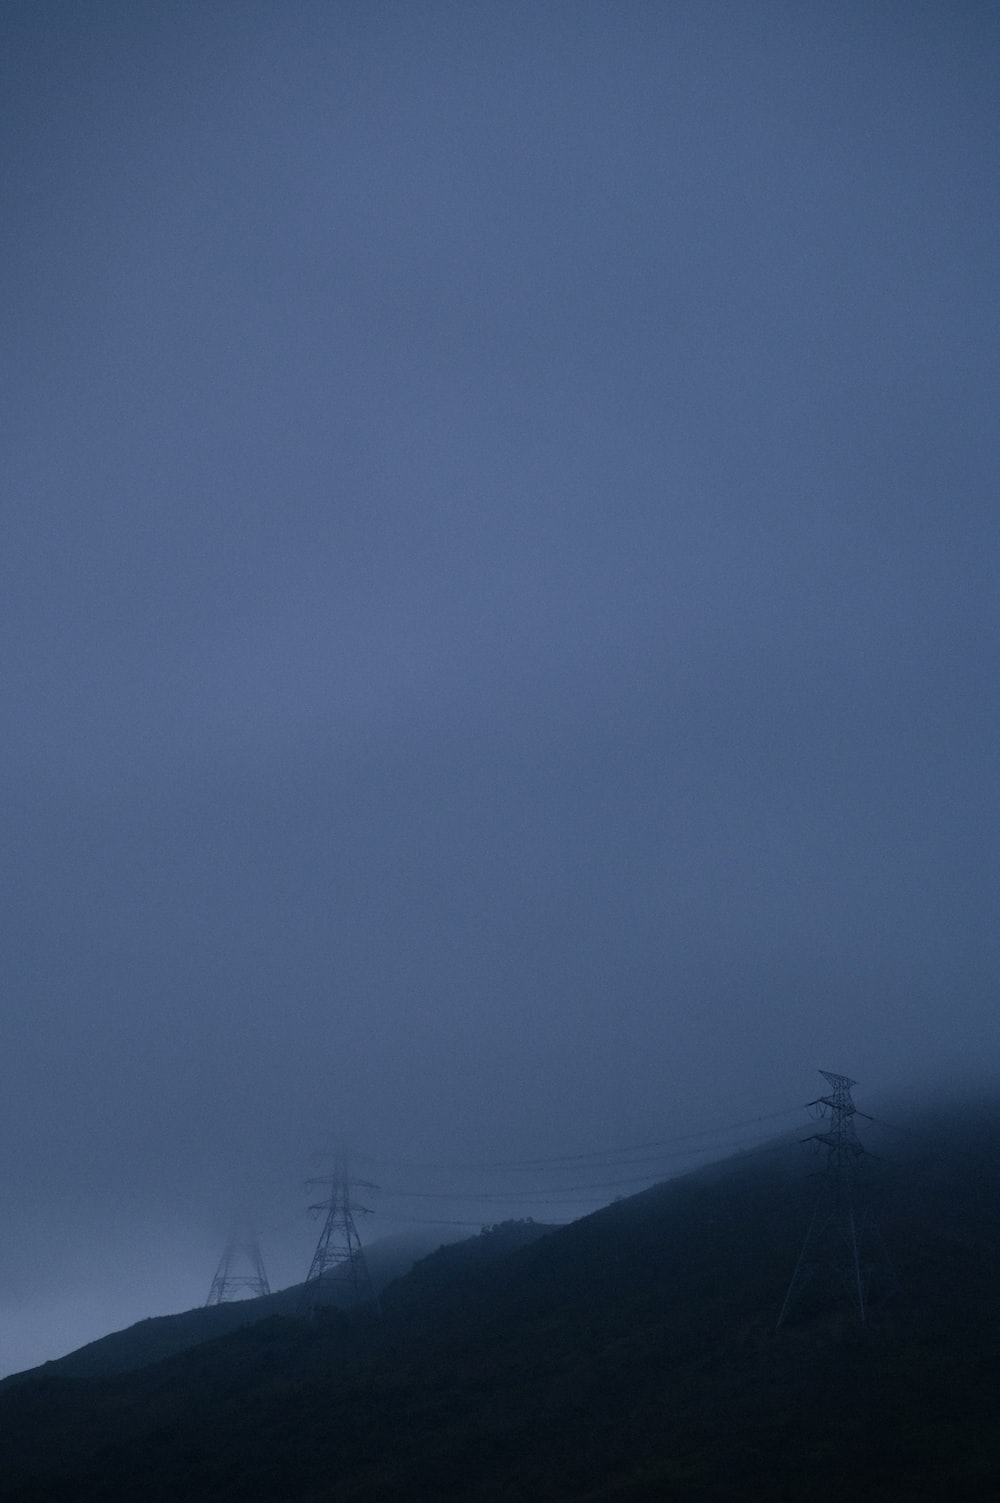 silhouette of mountain under gray sky